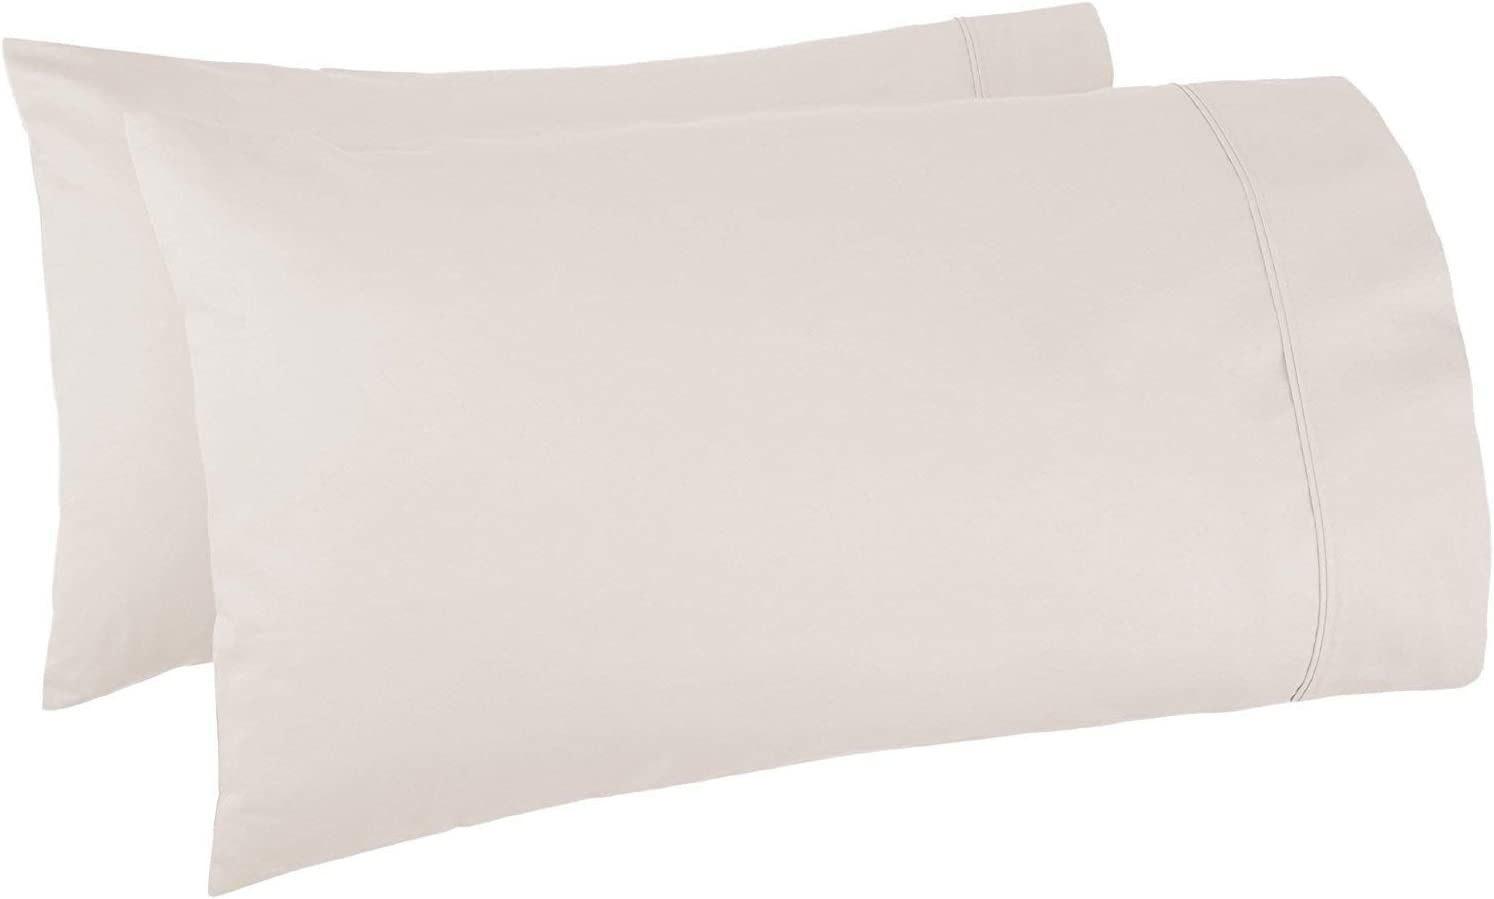 Set of 2 Pillow Cases 1000 Thread Count 100% Egyptian Cotton Long Staple, Durable and Silky Soft Pillow Covers, Shrink & Pilling Proof, Luxurious Hotel Class Bedding Linens (King, Ivory)